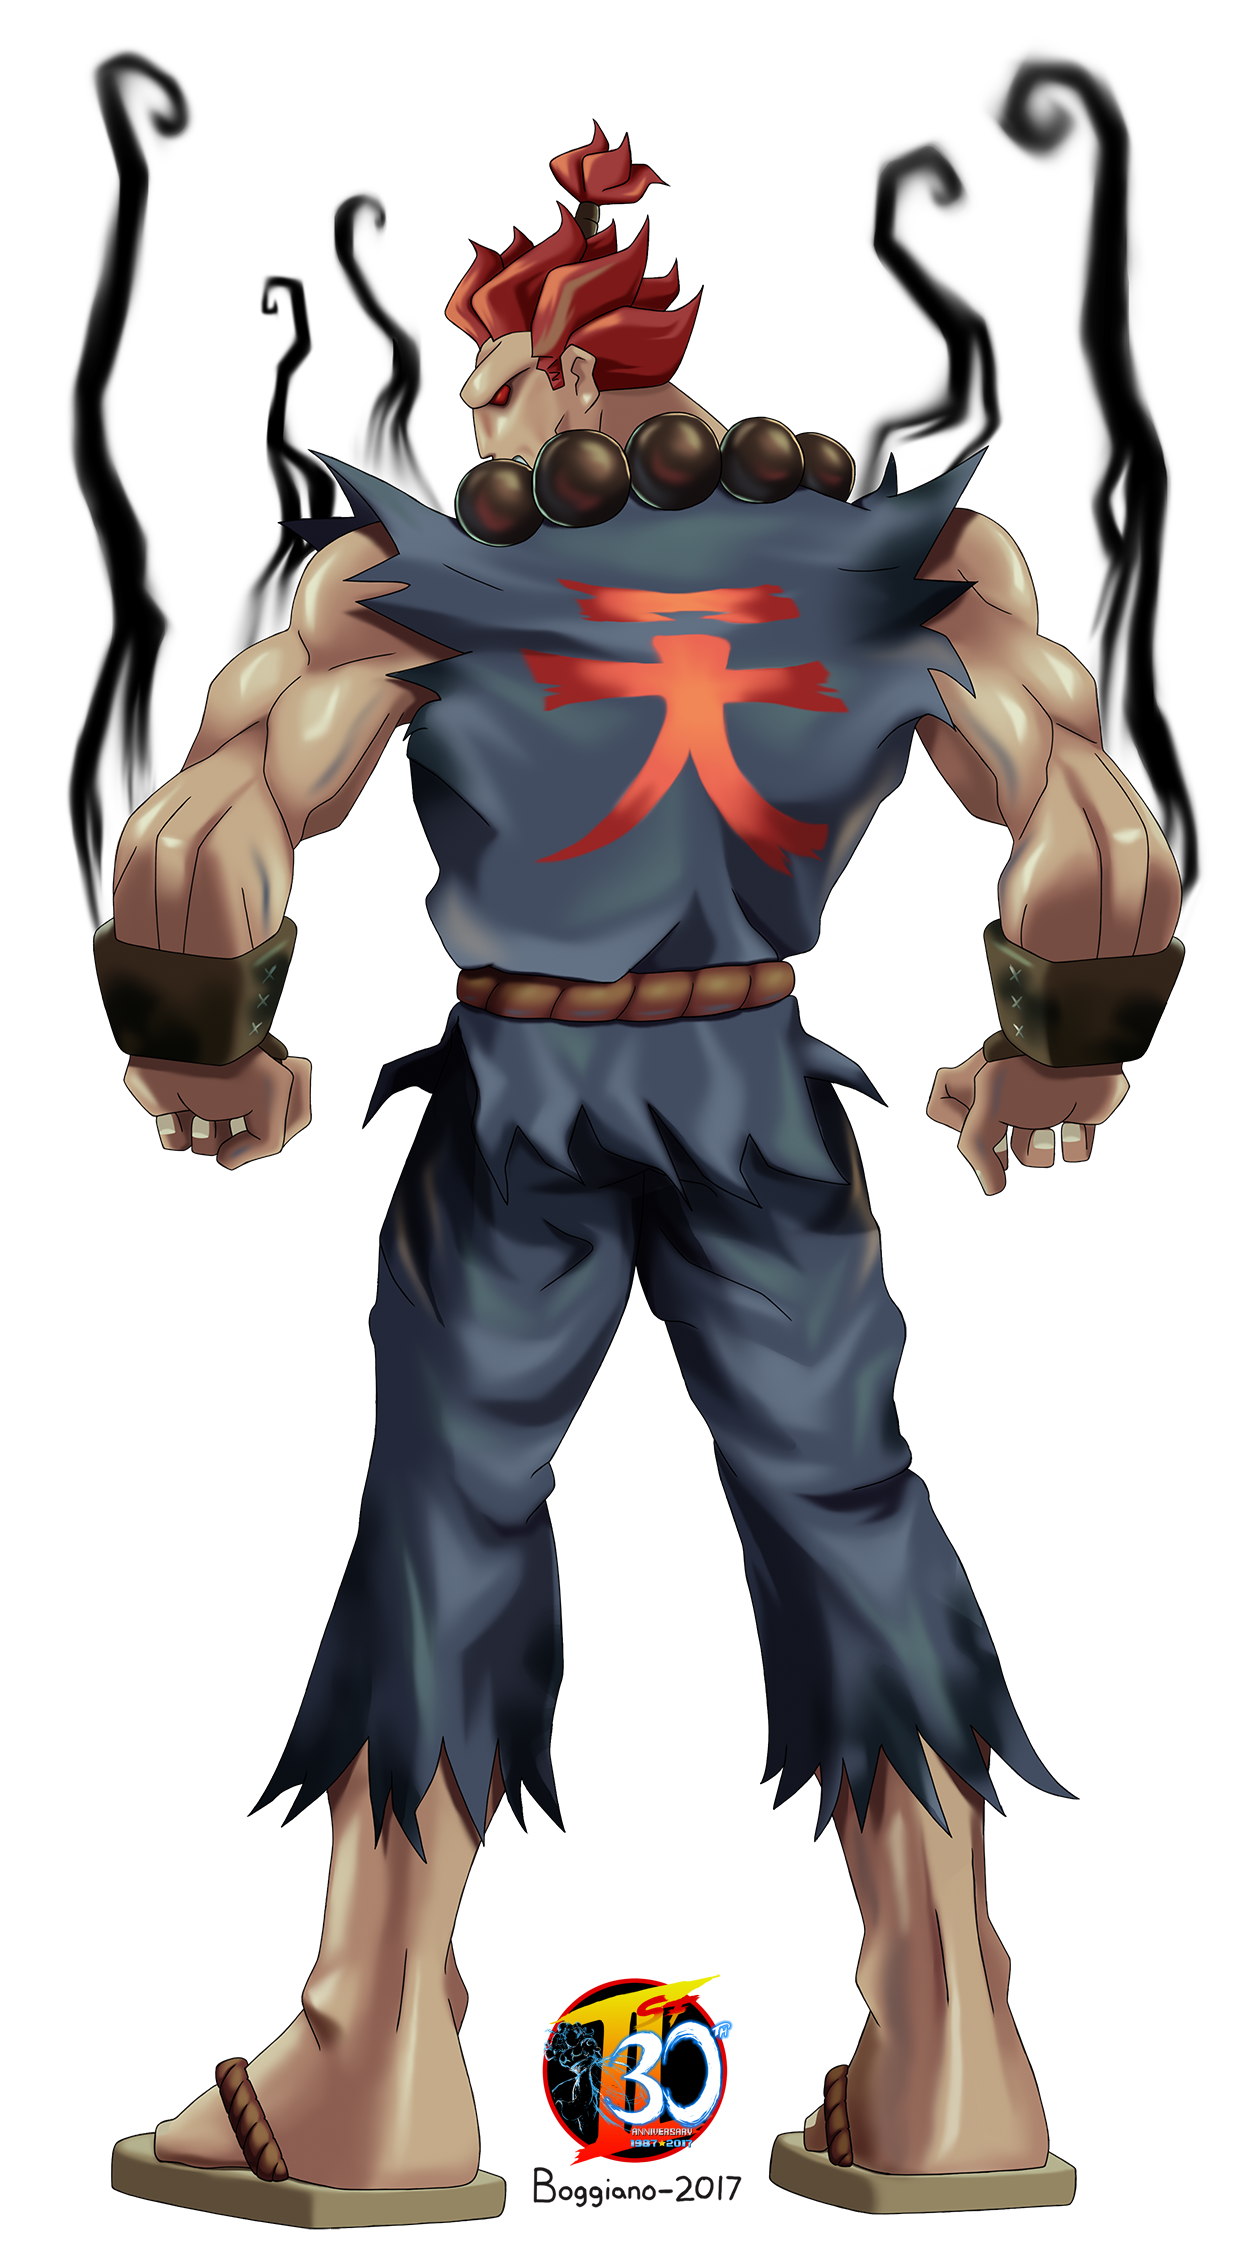 Akuma drawing back. Our street fighter th